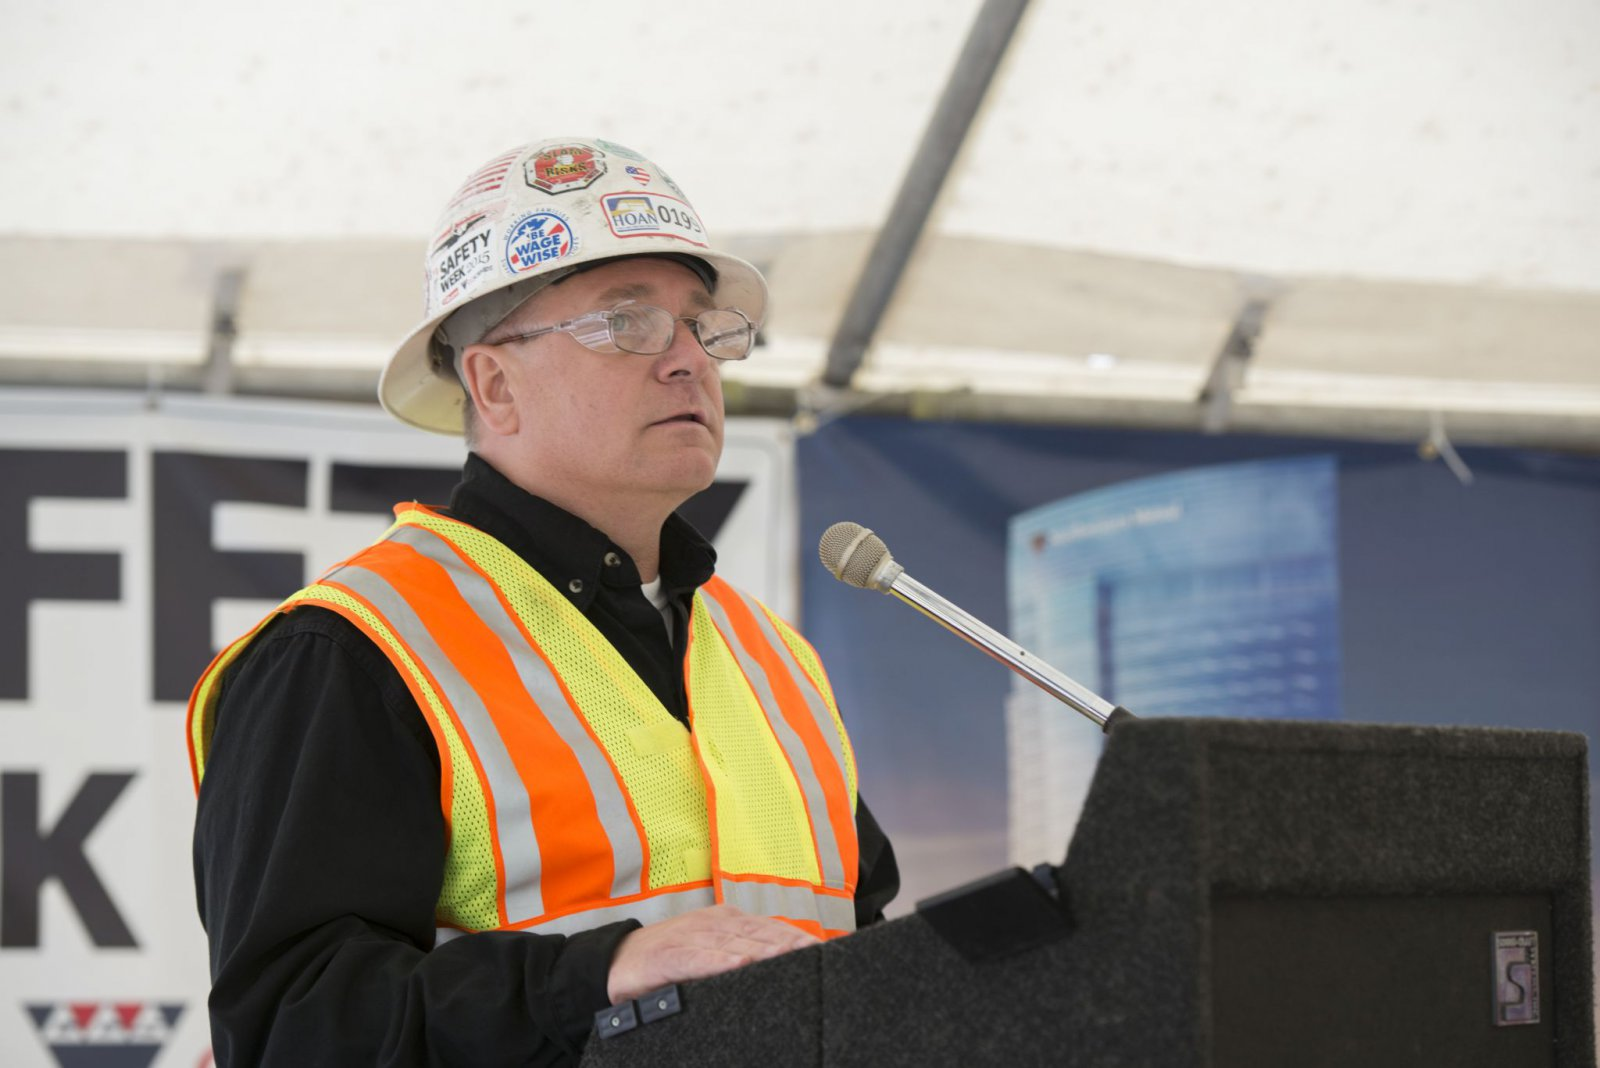 Dan Bukiewicz, president of the Milwaukee Building and Construction Trades Council.